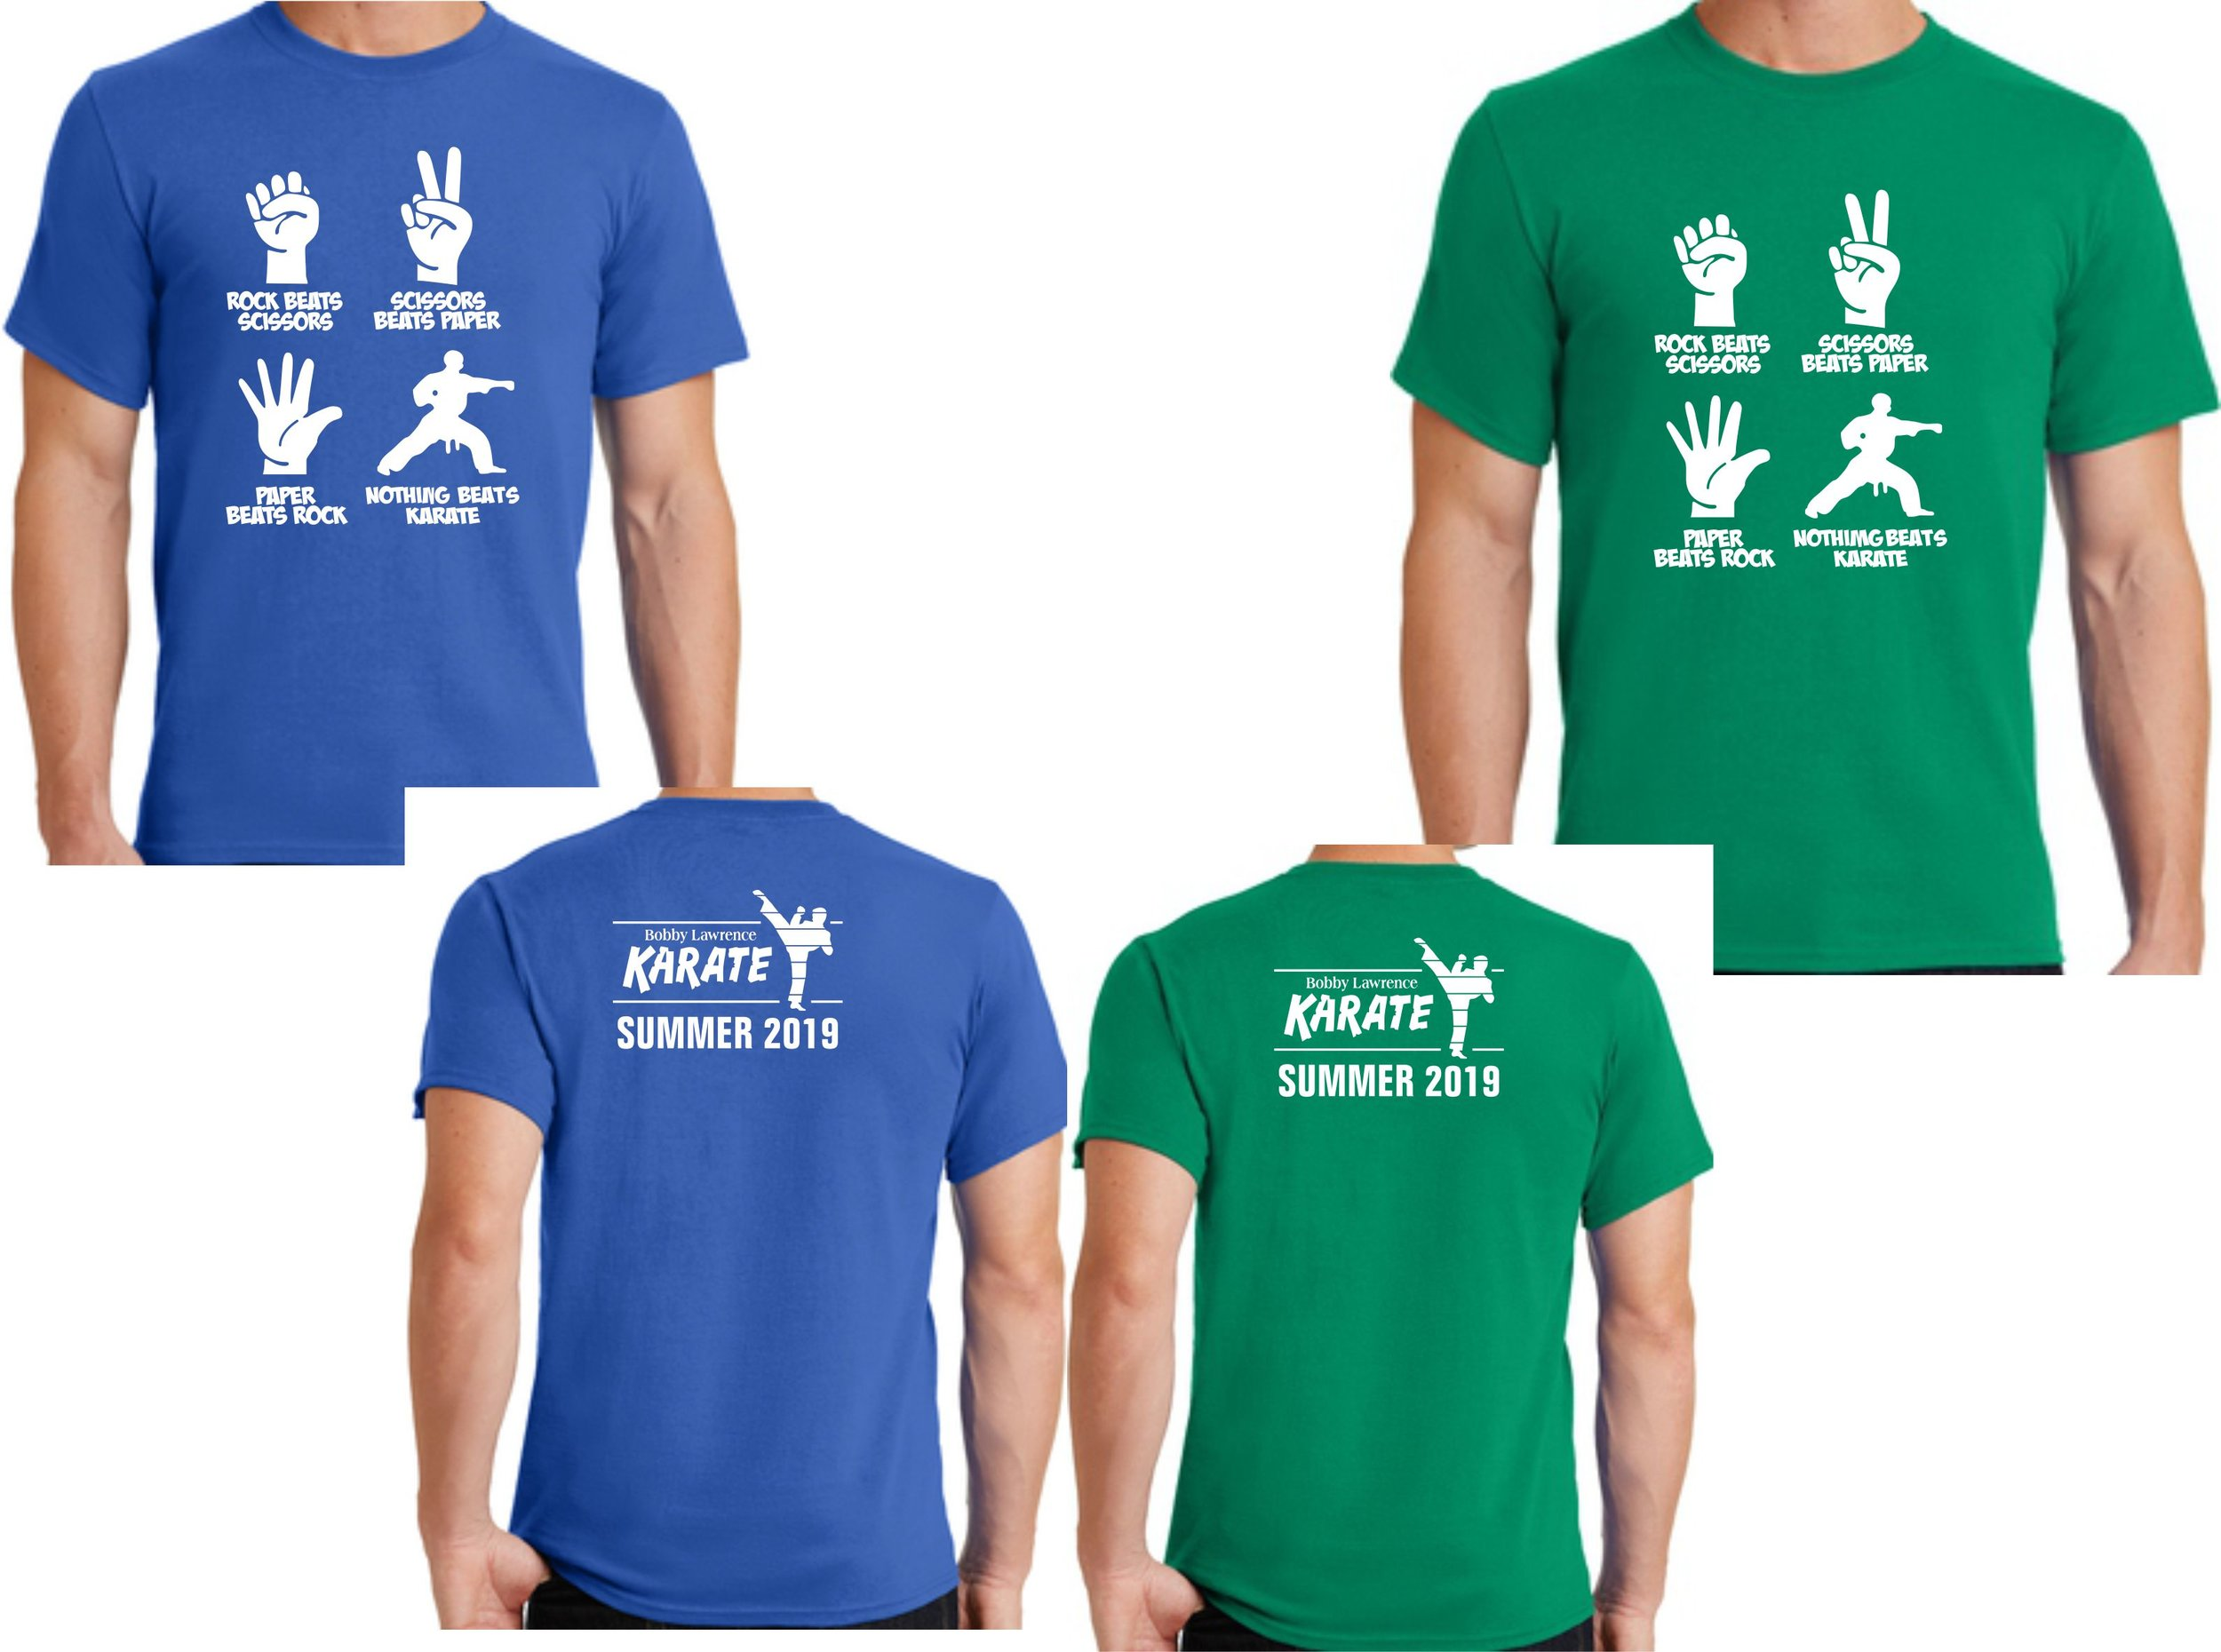 Blue shirts are for Black Belt Training and Basic program members. Green shirts are for Black Belt Leadership members (that way we can still tell who is in each program).